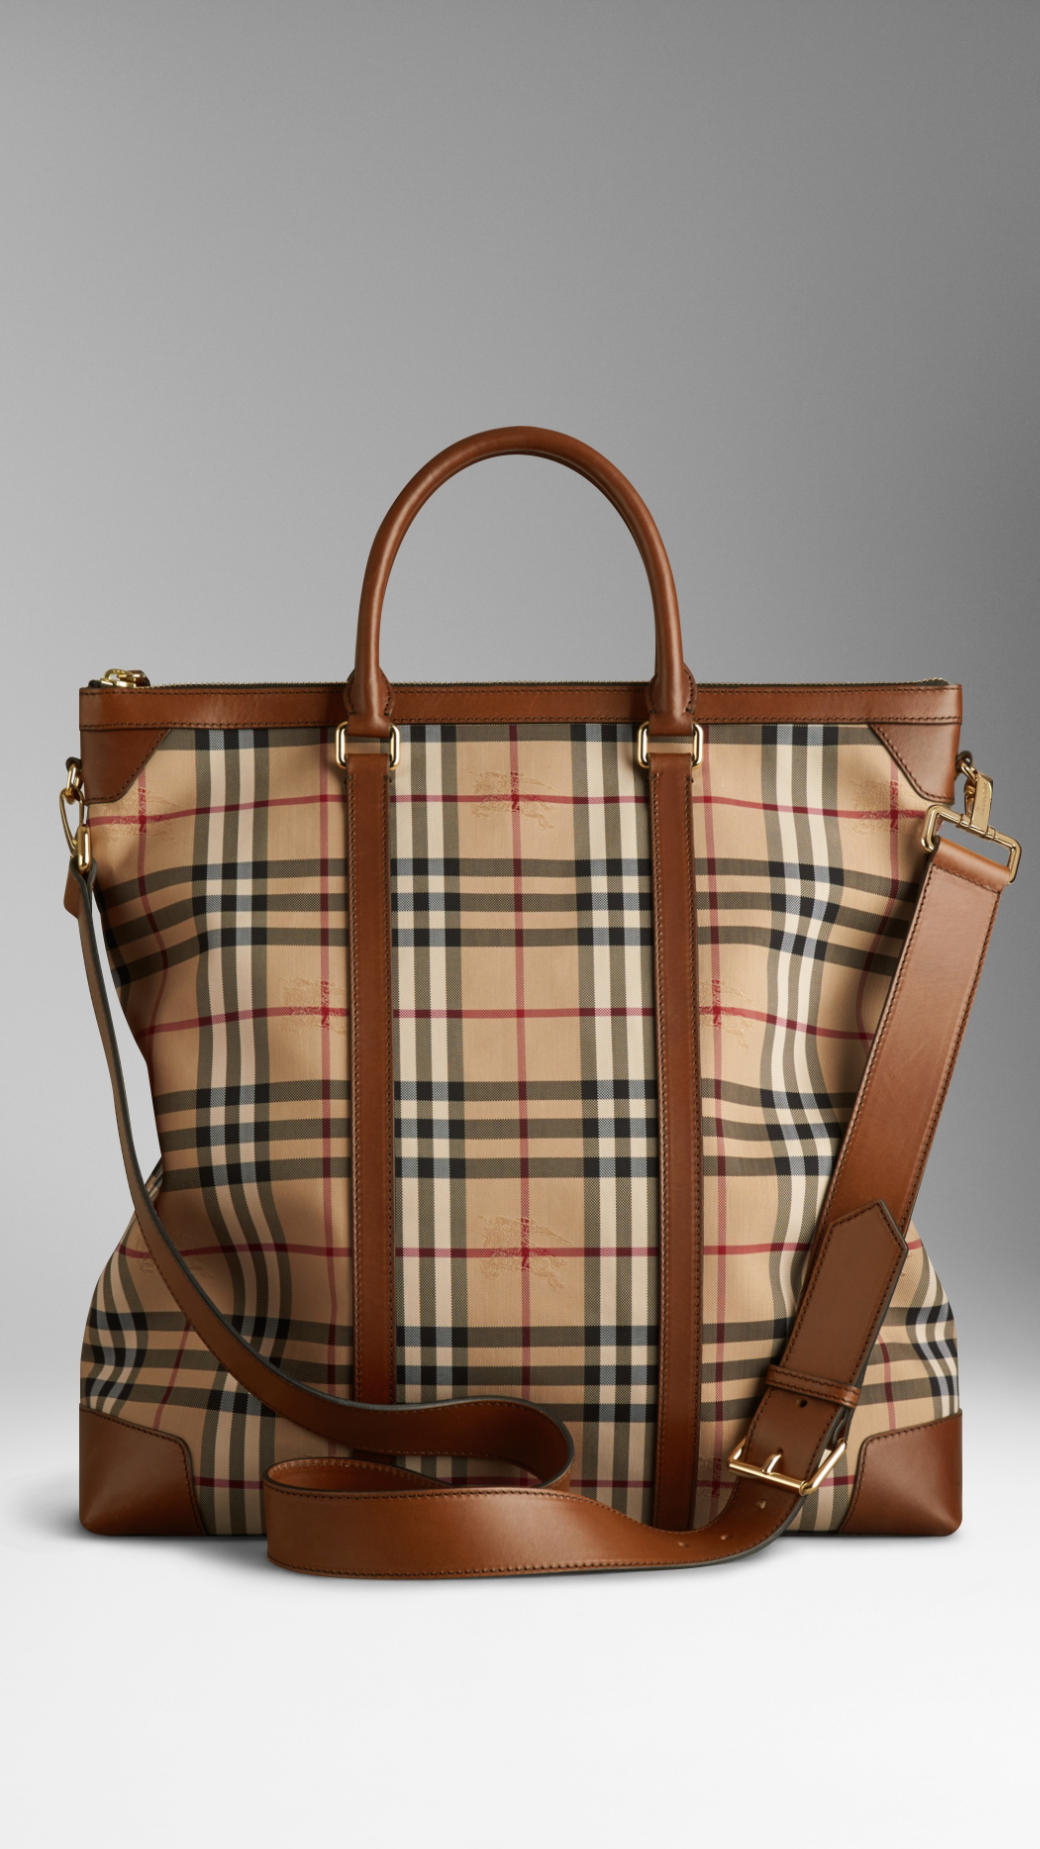 af707b688d4a Lyst - Burberry Large Horseferry Check Leather Tote Bag in Brown for Men